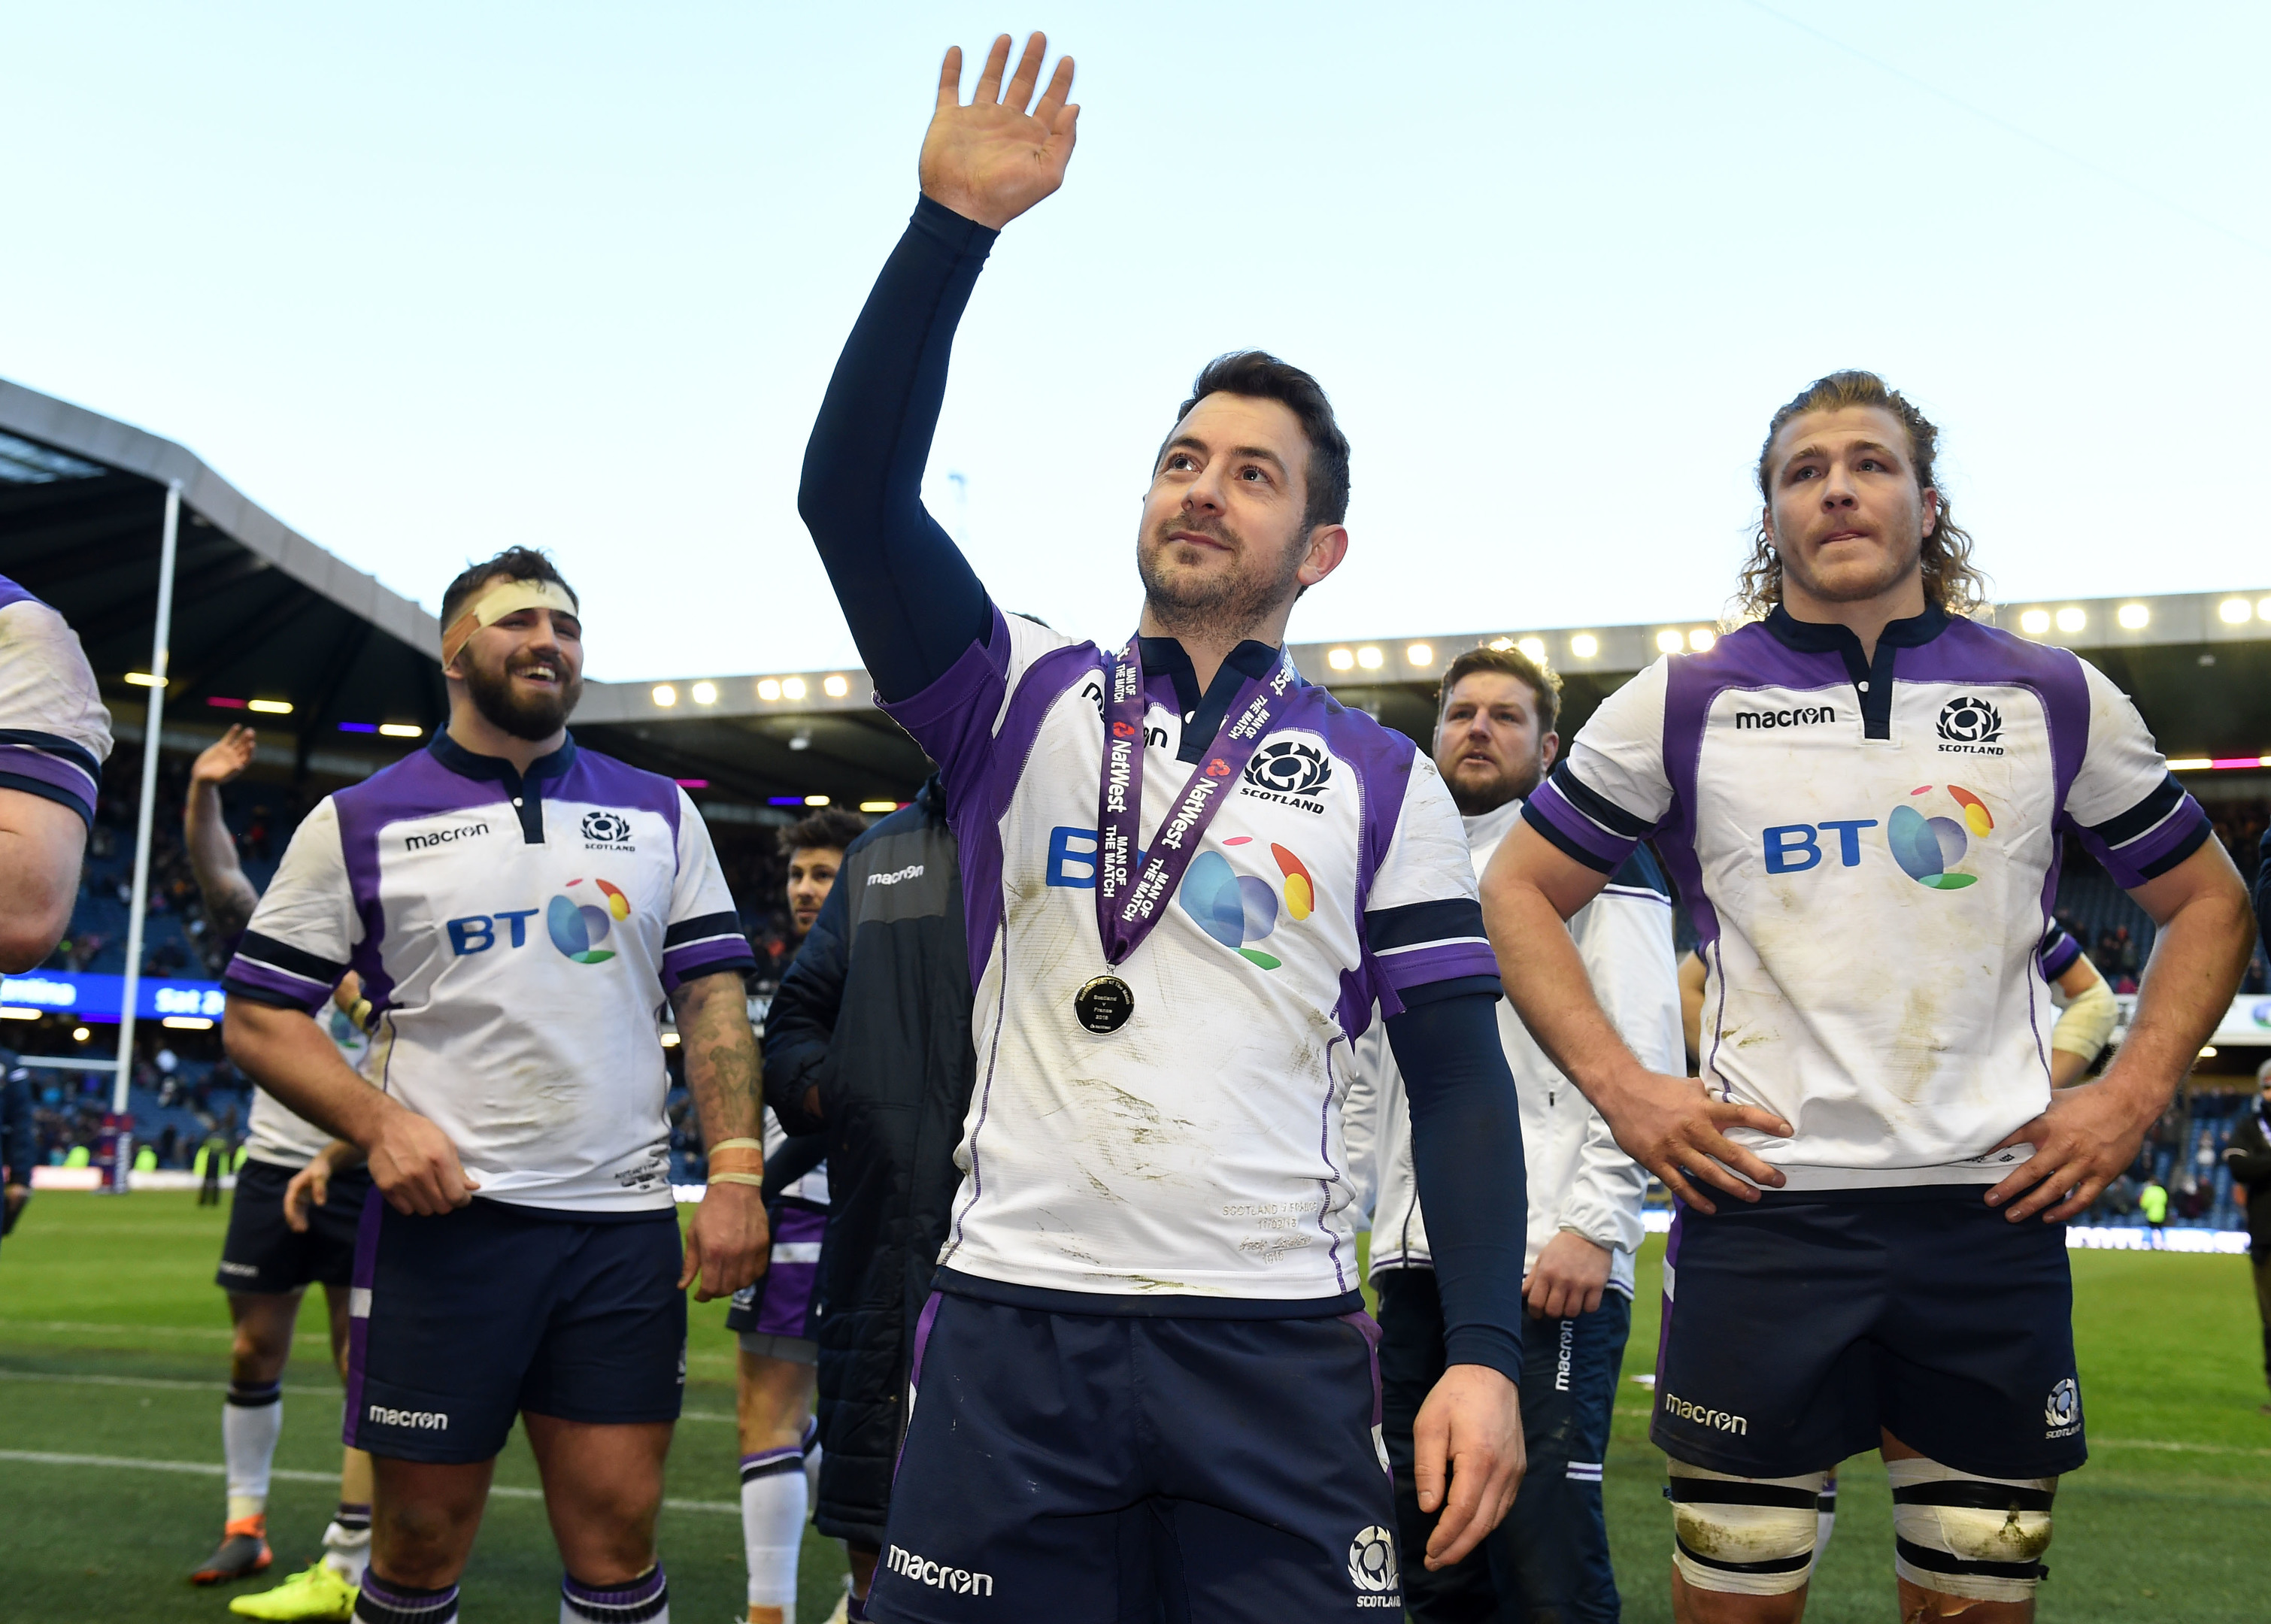 Man of the match Greig Laidlaw takes the applause of the Murrayfield crowd at full time